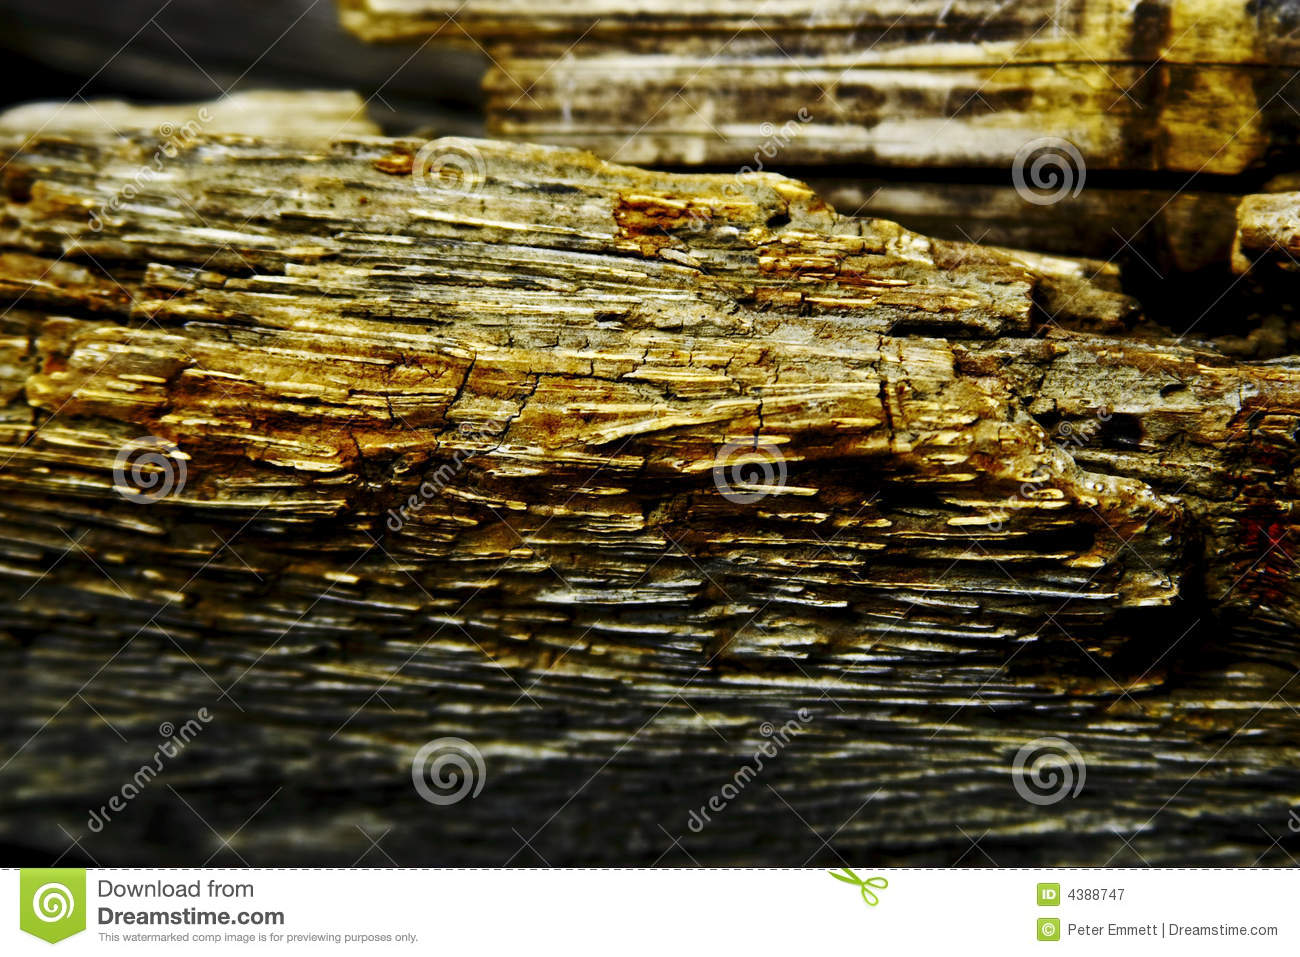 if you have decaying wood , it is the major sign in termite identification